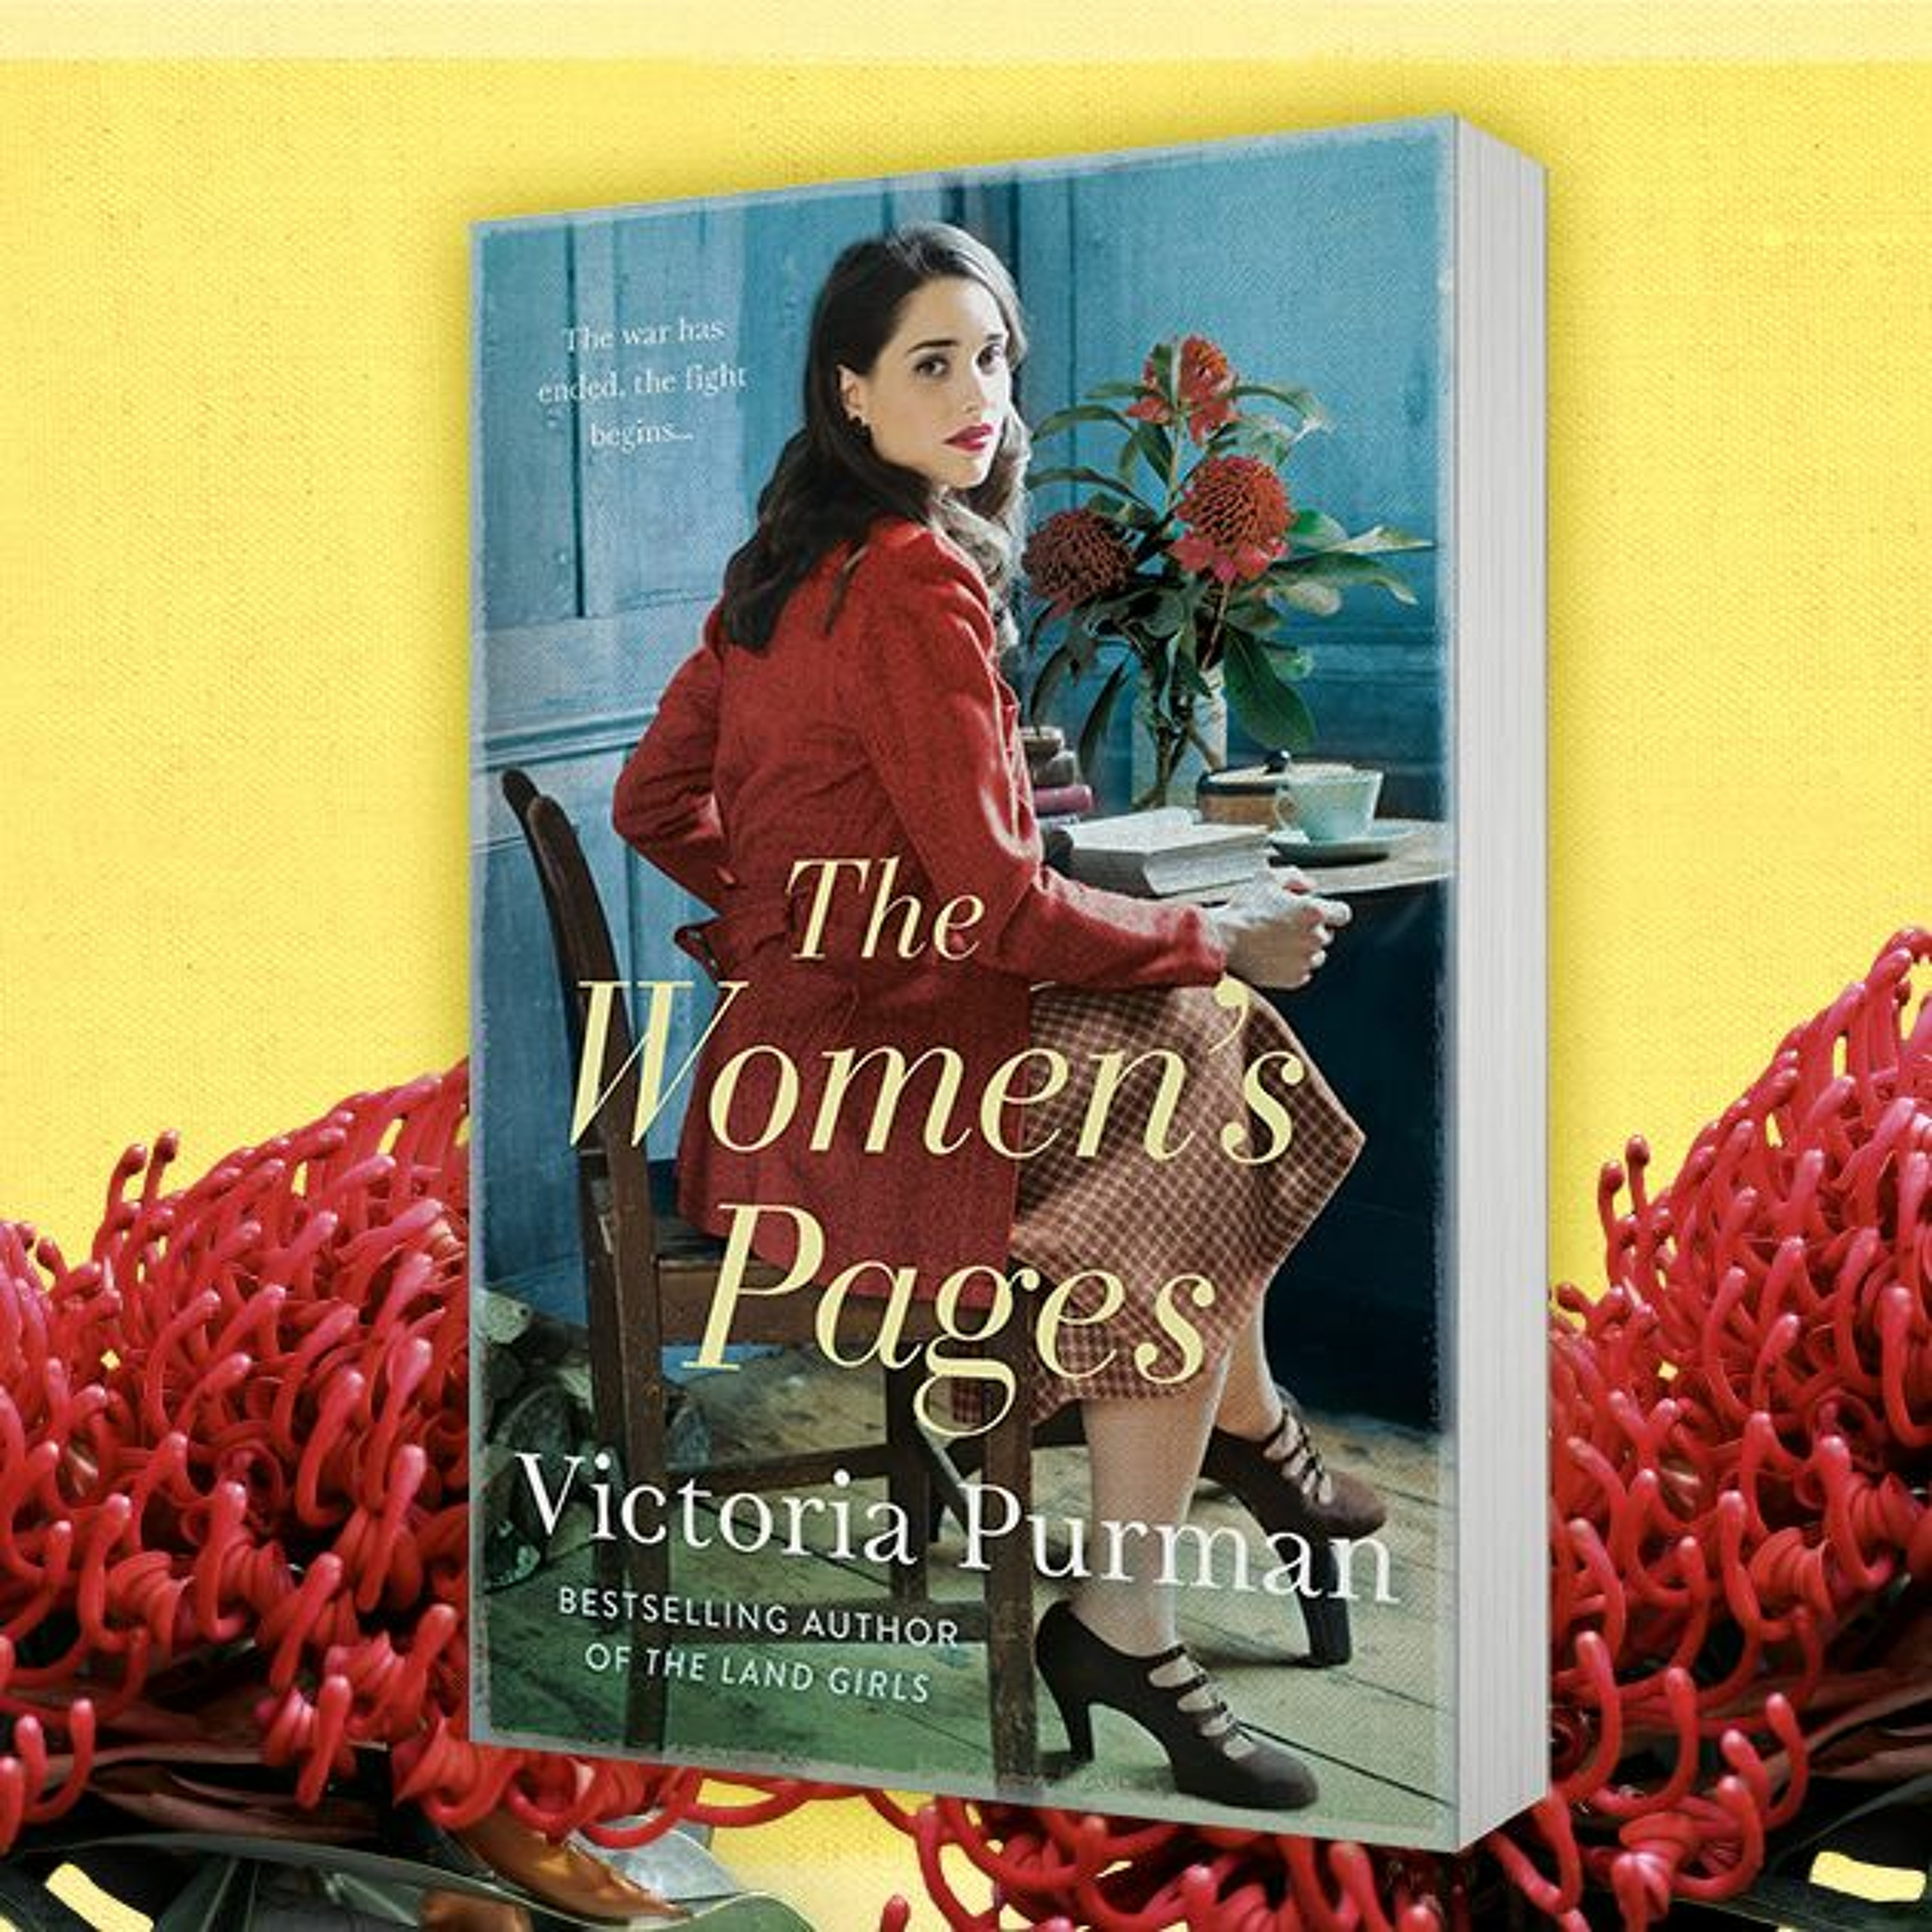 Meet the Author - Victoria Purman